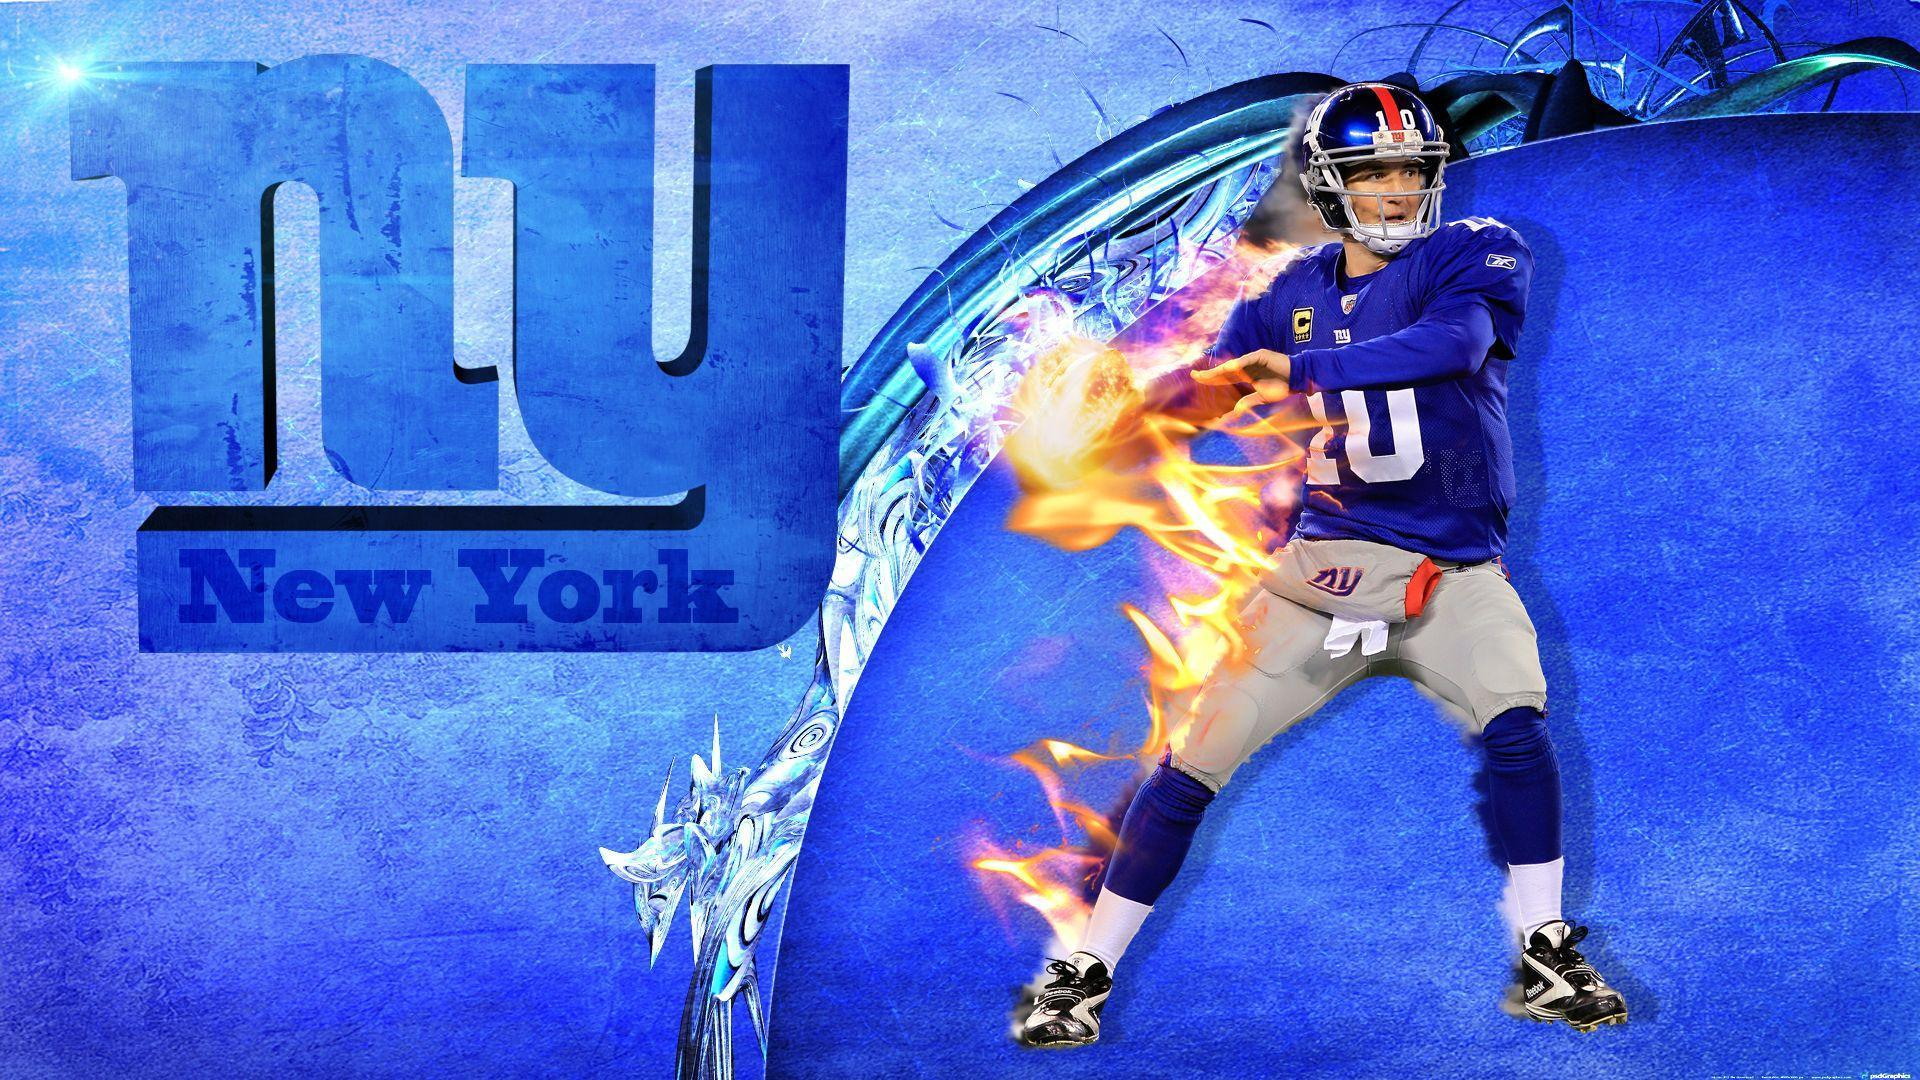 New york giants, Wallpapers and New york